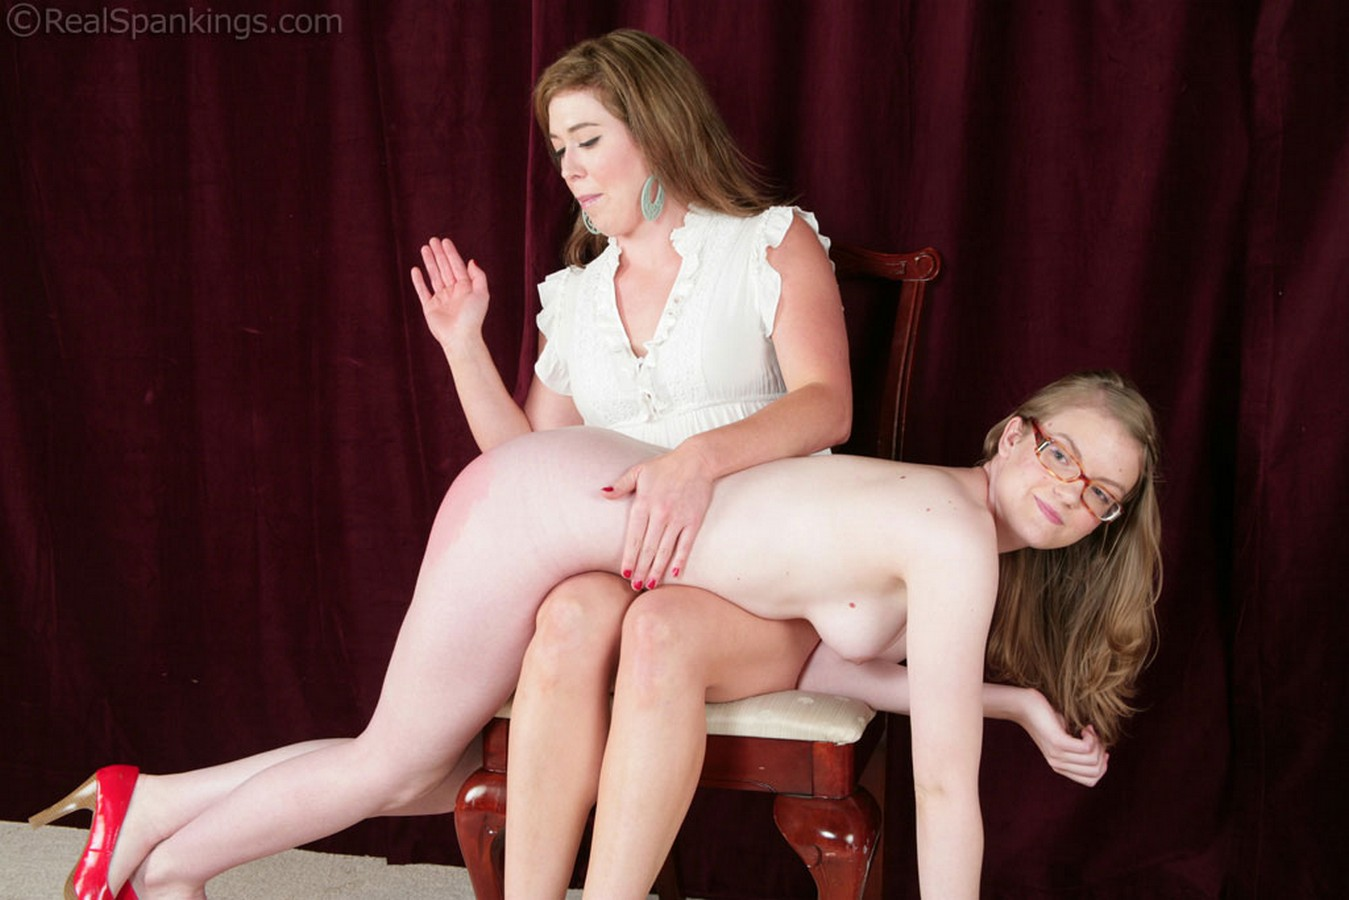 spanking models preview pictures 39